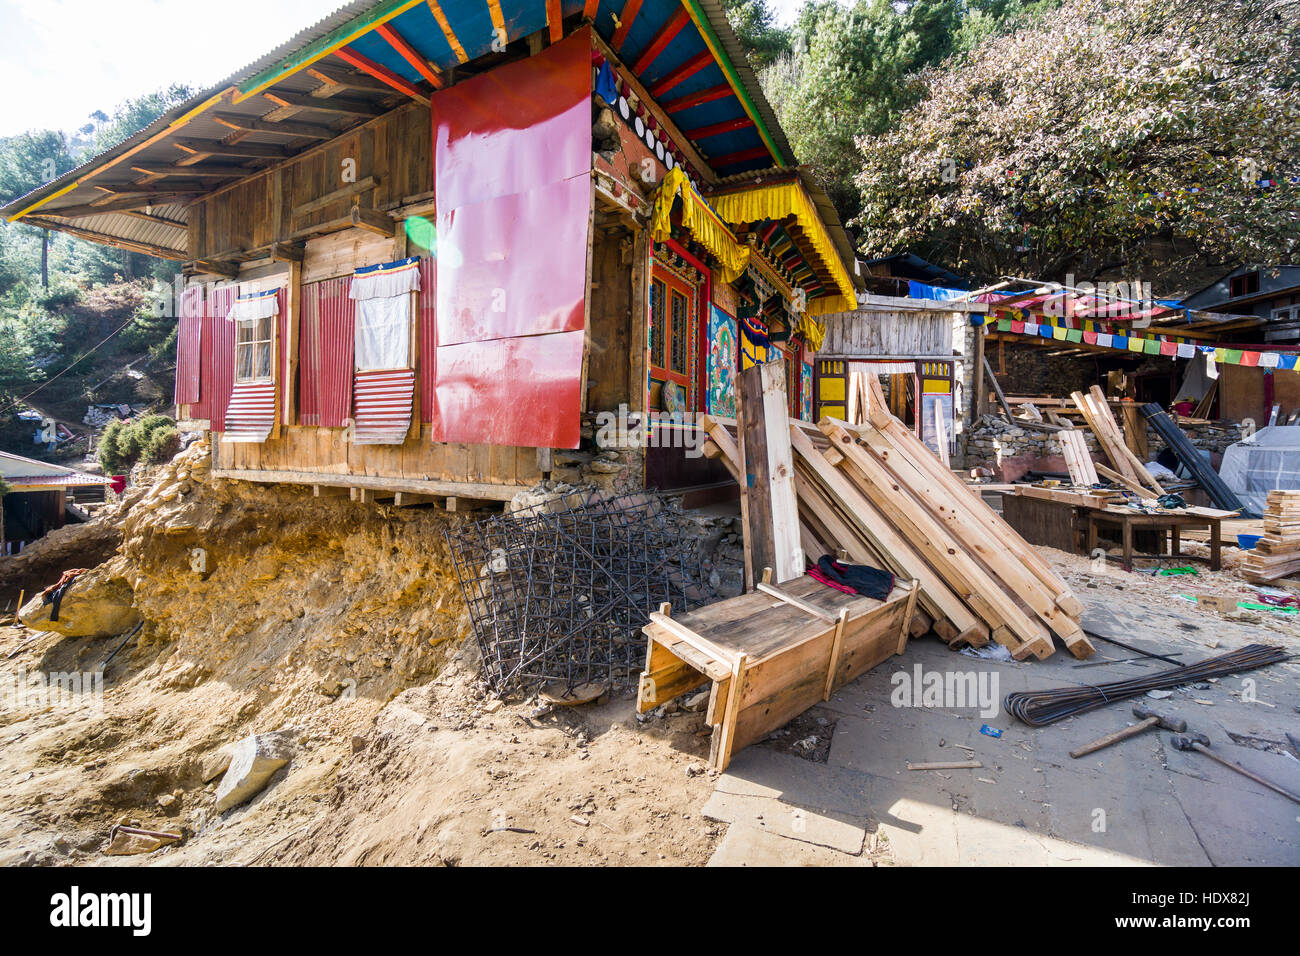 The monastery Pema Choling Gompa, which was heavily damaged during the 2015 earthquake, is getting rebuild - Stock Image